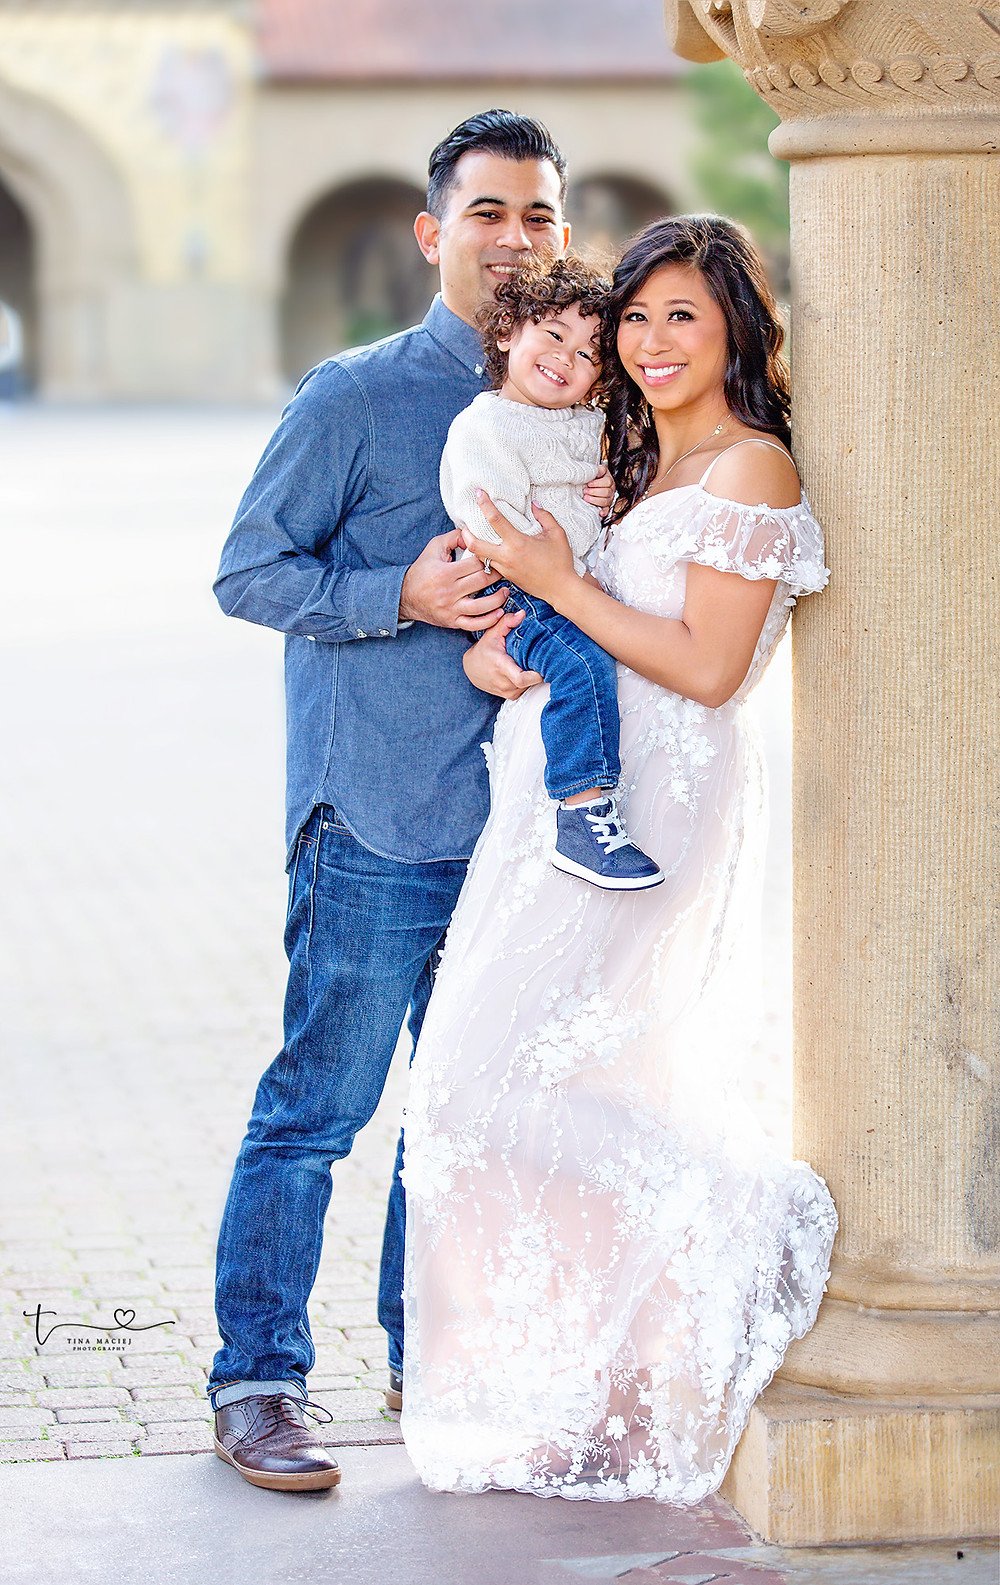 Maternity and Family Photographer Palo Alto